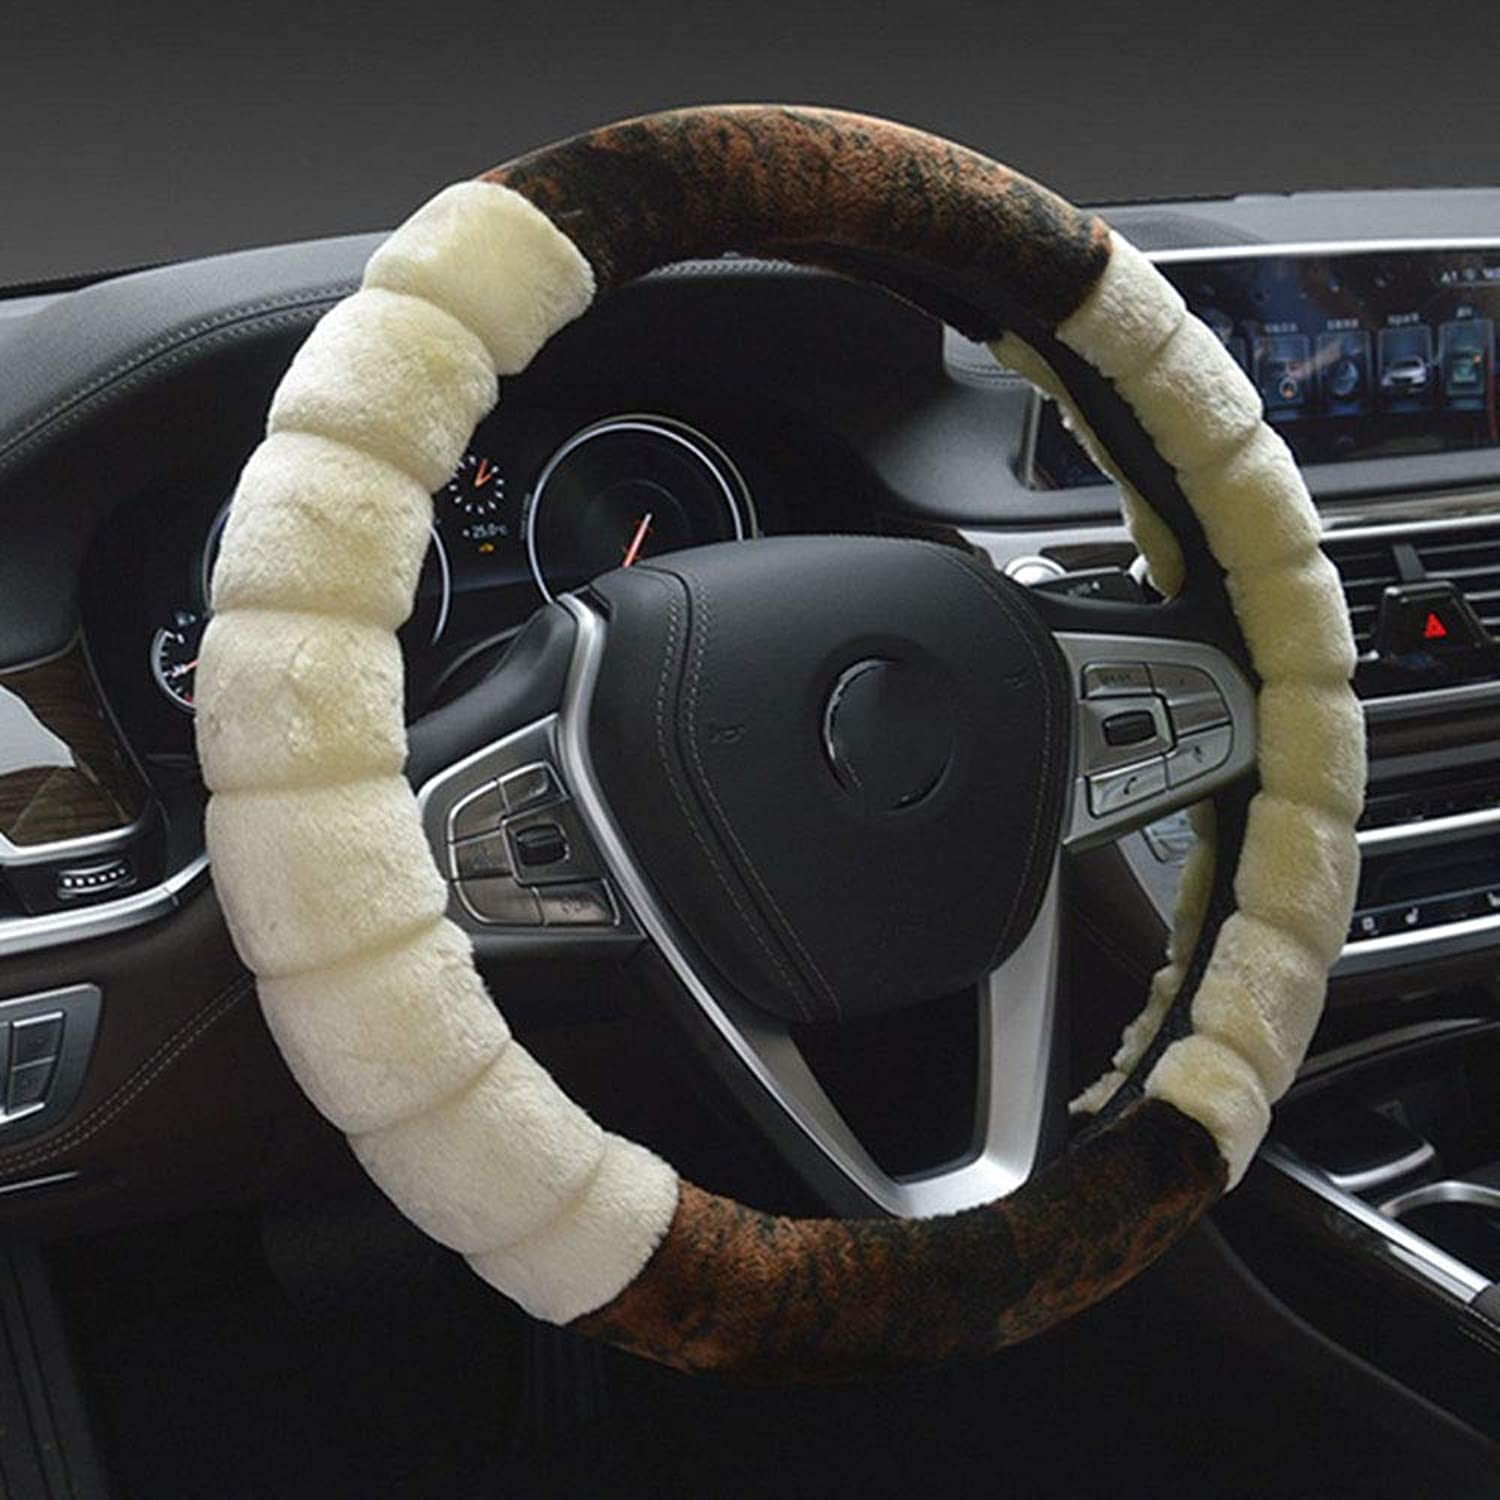 Universal NonSlip Soft Car Auto Steering Wheel Covers, Comfortable, Durable,15inches, 2